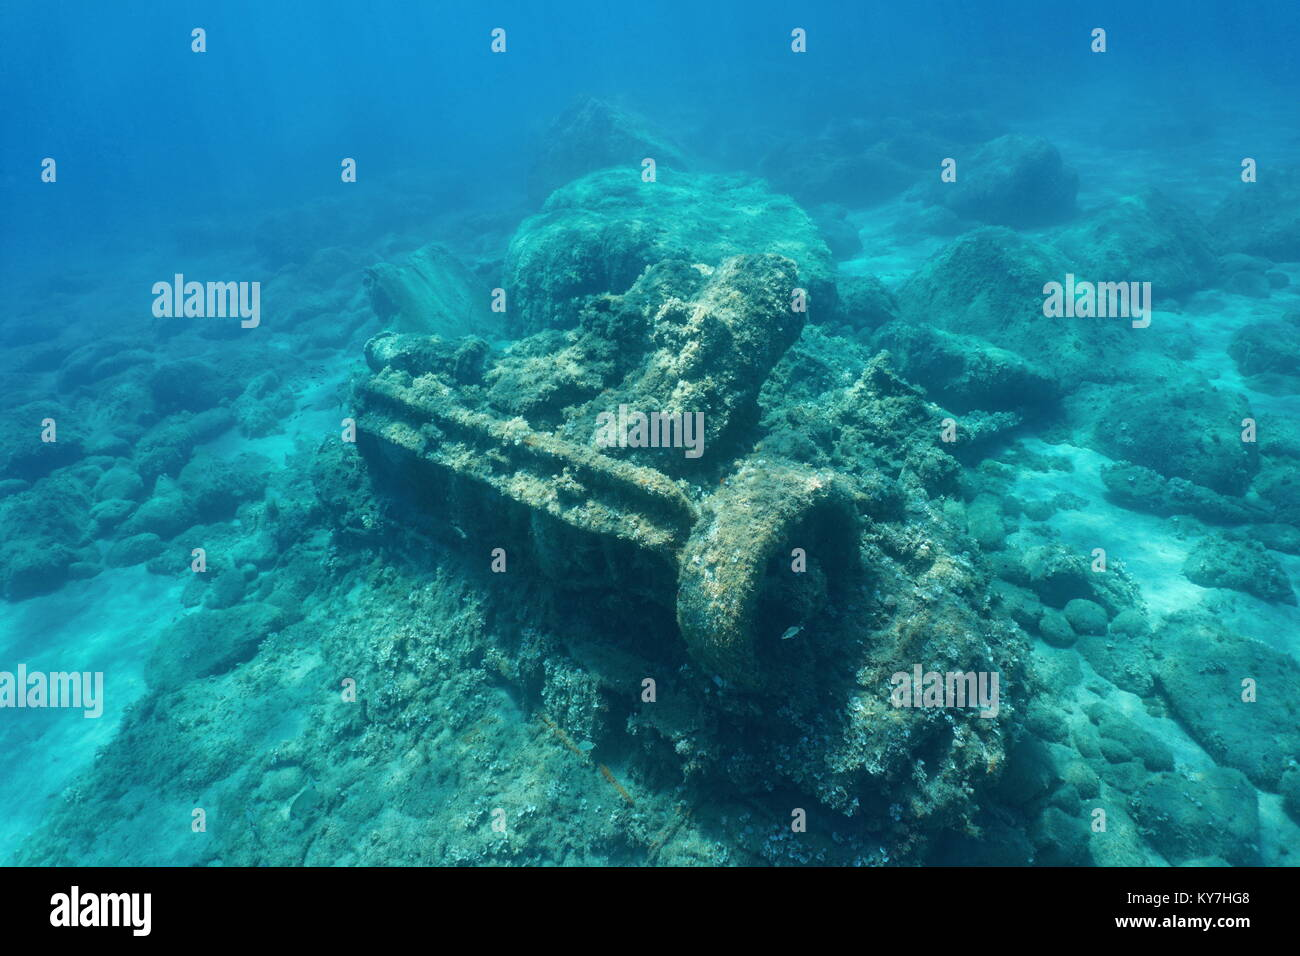 Wrecked ship remains a marine steam engine underwater on the seabed, Mediterranean sea, Vermilion coast, Pyrenees - Stock Image